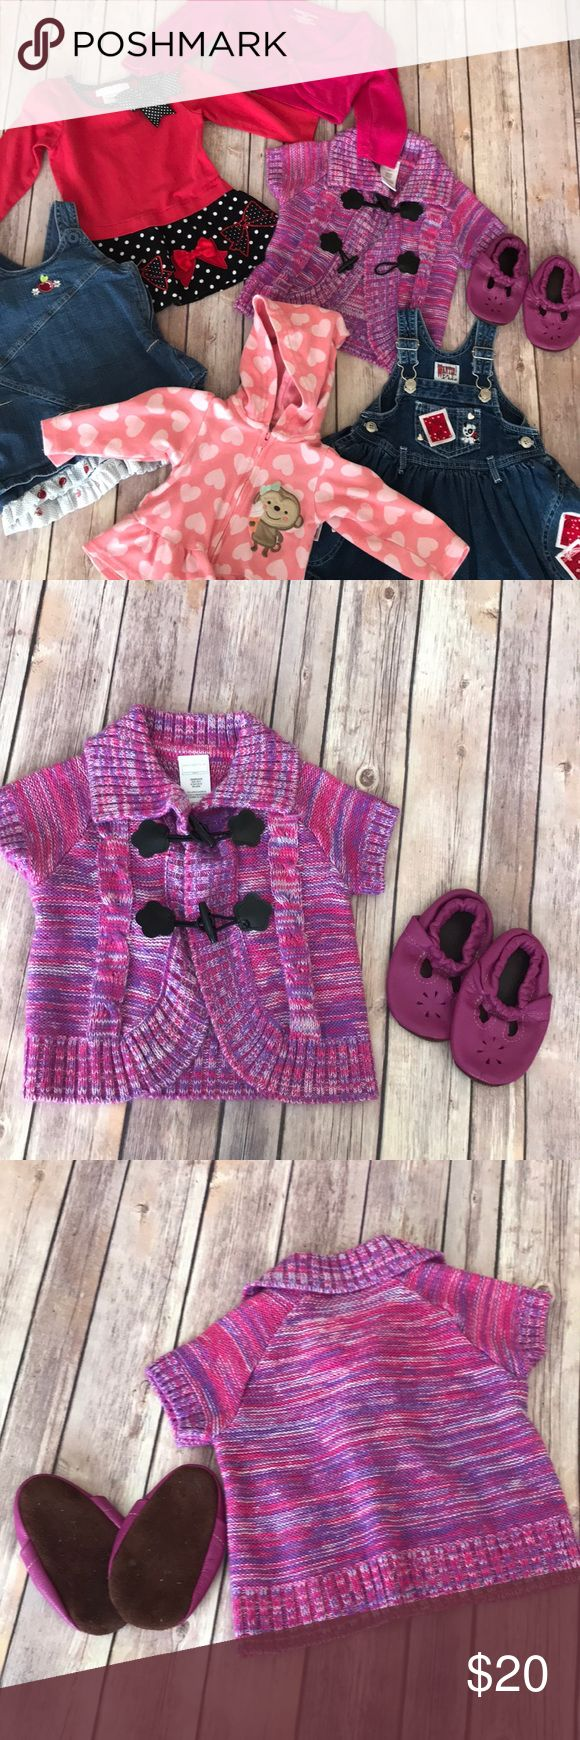 Baby Girl Dress Sweater Winter/Spring Bundle •Wonder Kids: Pink & Purple Knit Cardigan Sweater w/ toggle closure EUC 12M •Purple Moccasins: unmarked size VGUC •Wanted Kids: Denim Dress w/ red bandana detail & black & white puppy on chest pocket. Small. May fit more like a 12-18M dress EUC •Wonder Kids: Denim Dress w/ apple ruffle detail & apple embroidery the chest EUC 12M •Just One You: Zip hoodie VGUC 12M •Bonnie Baby: Black & Red Tunic/Dress. polka-dot, bow,& ribbon detailing. EUC. 12M…